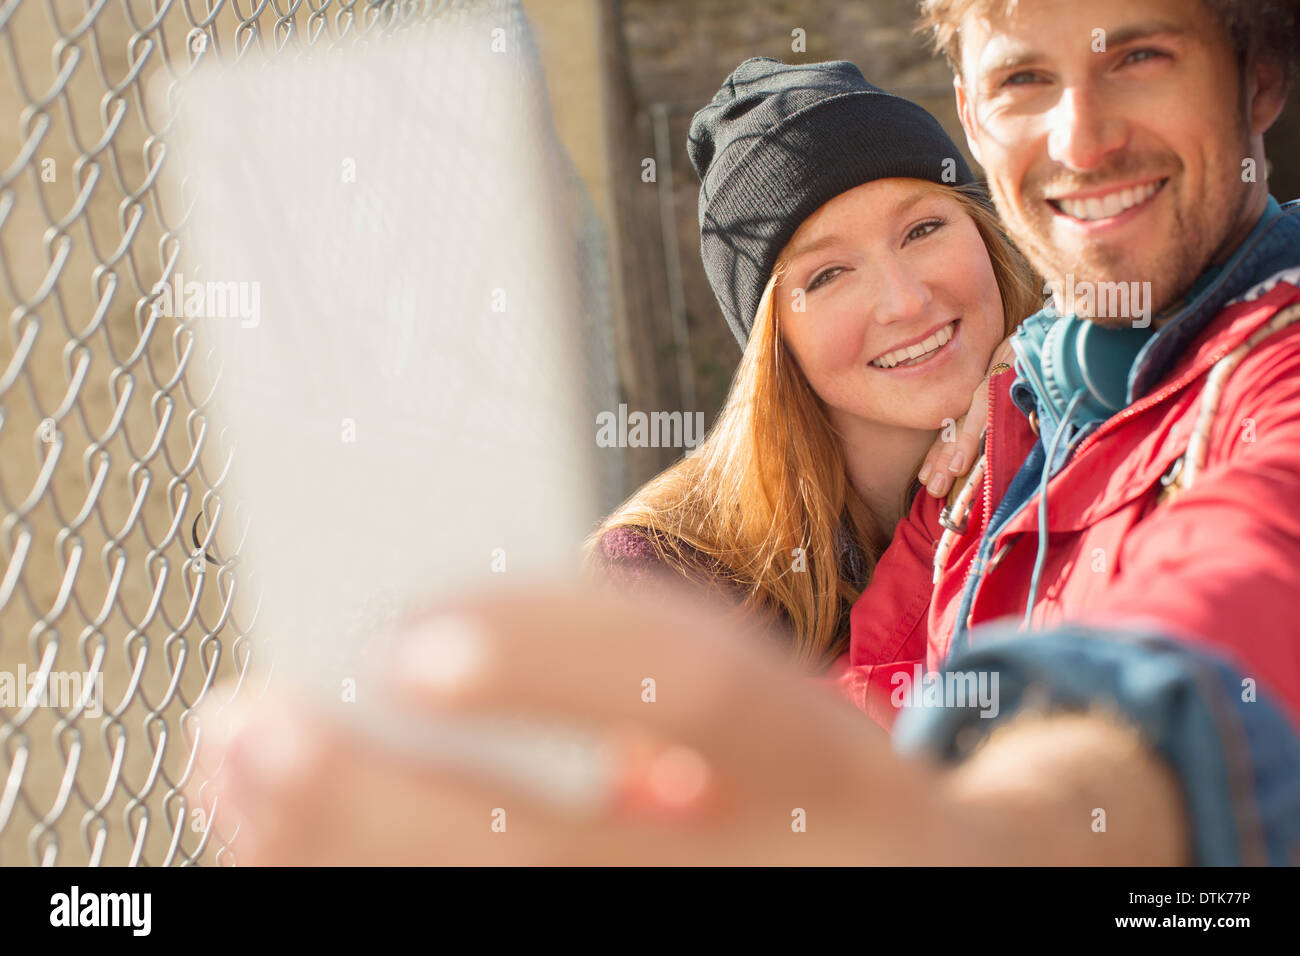 Couple taking self-portrait with camera phone next to chain link fence - Stock Image